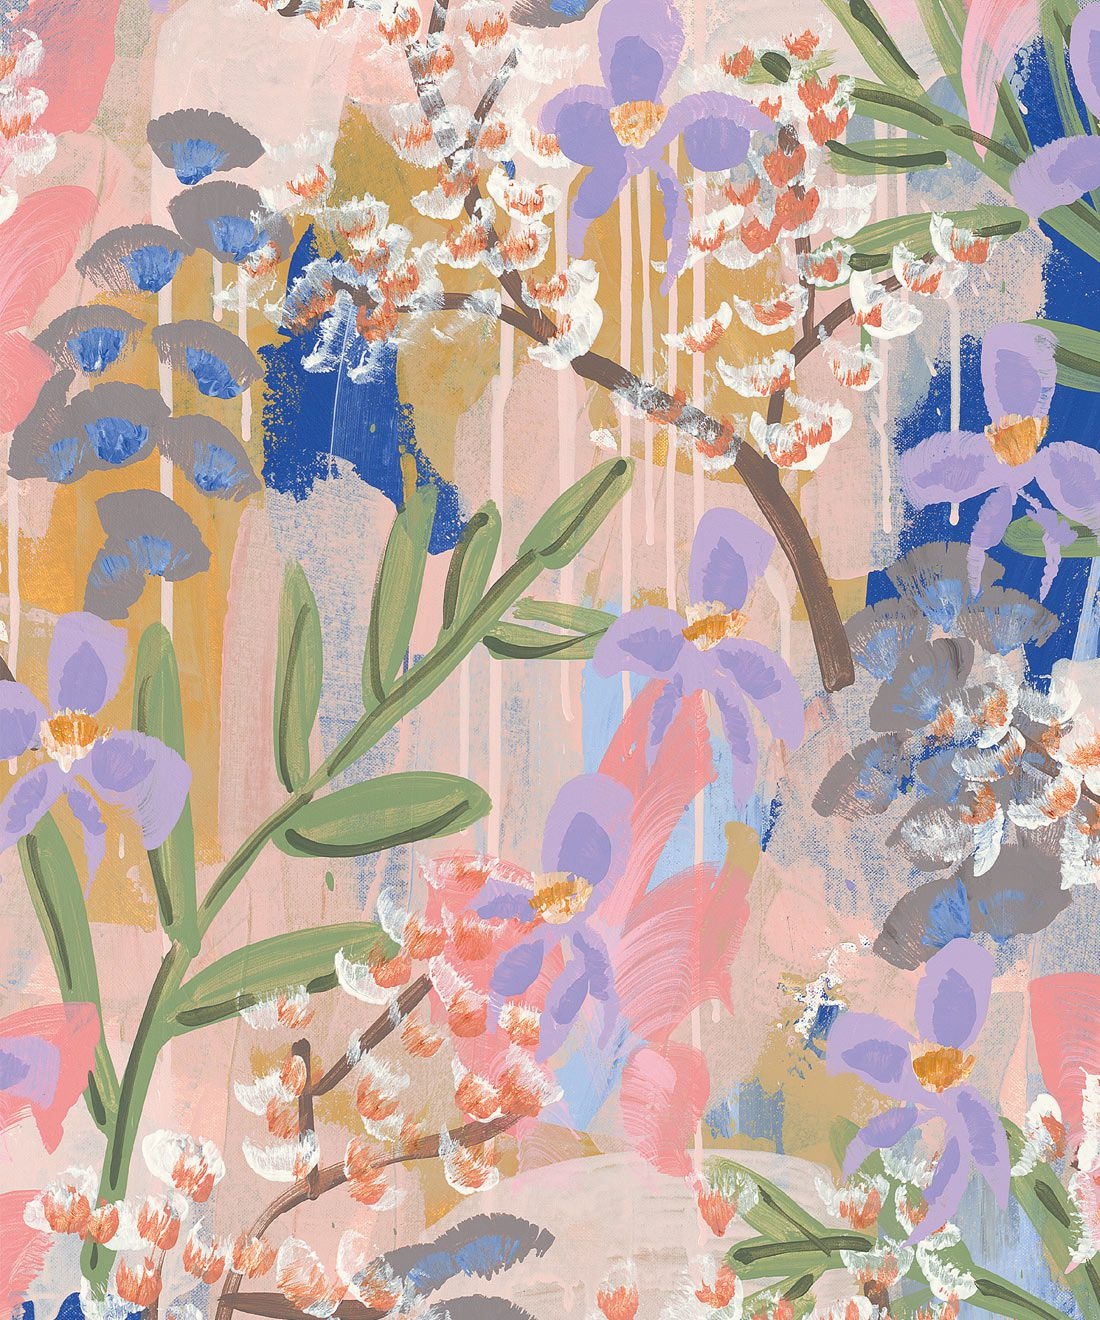 Daphne Wallpaper •Colourful Floral Wallpaper • Tiff Manuell • Abstract Expressionist Wallpaper • Swatch